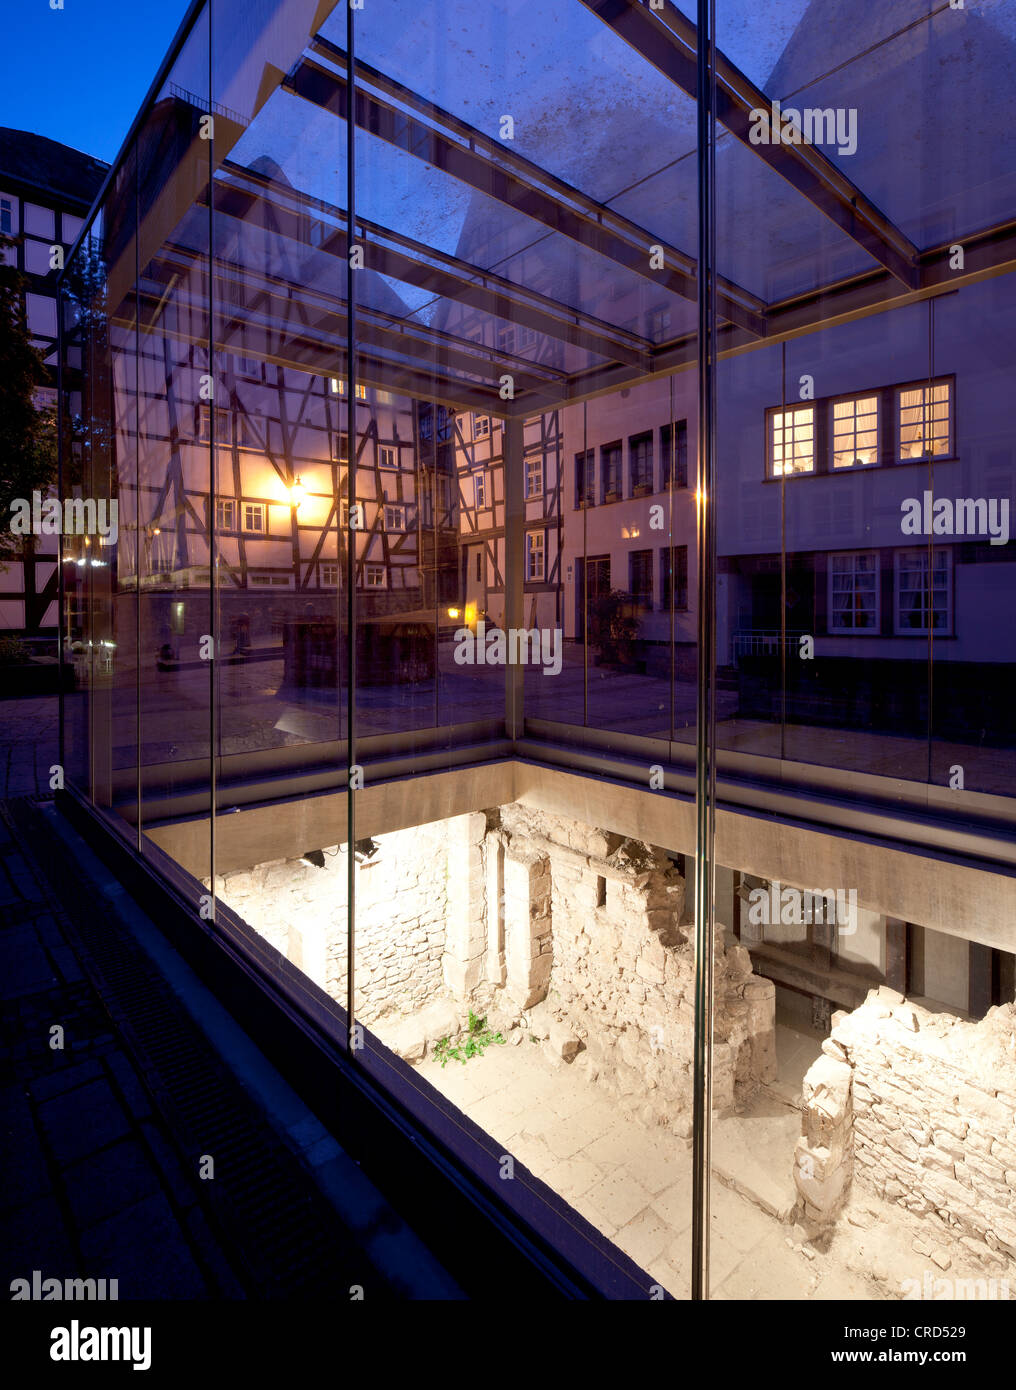 Old Synagogue, glass cube with archaeological excavations, Upper Town, Marburg, Hesse, Germany, Europe, PublicGround - Stock Image